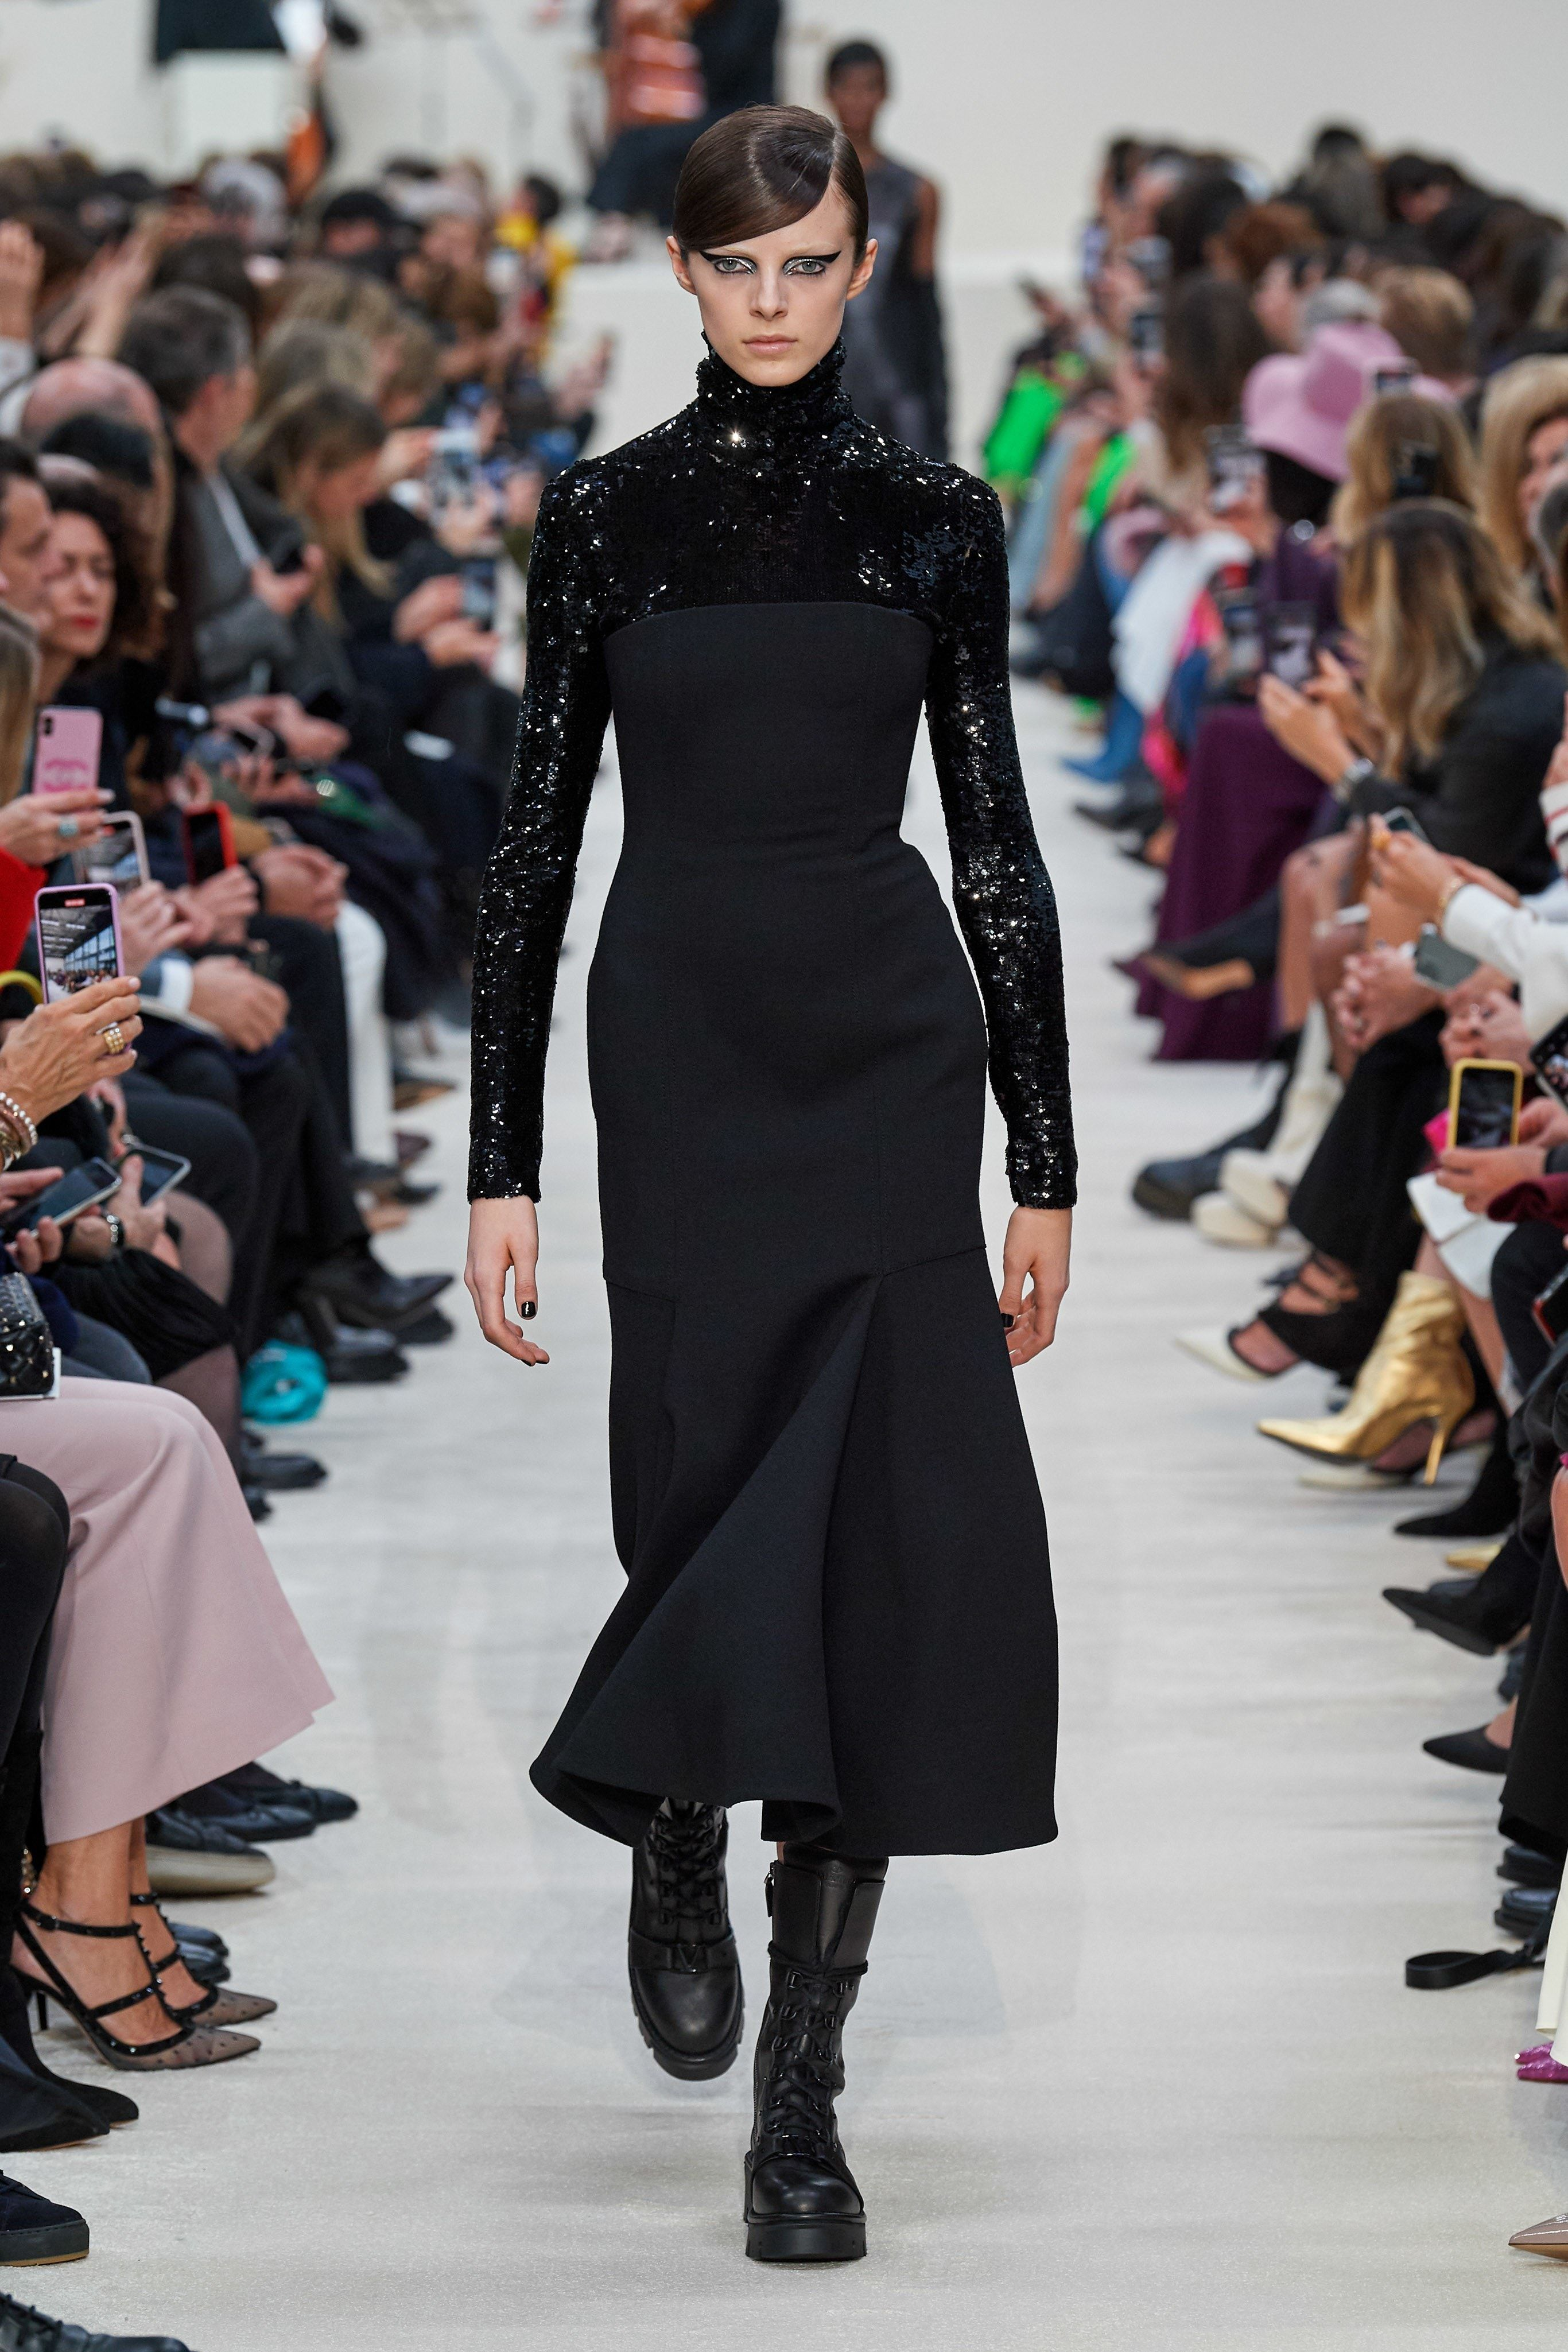 Paris Fashion Week Fw 2020 Valentino Black Minimalist Dress And Sequin Top Clothia In 2020 Fashion Paris Fashion Week Runway Fashion